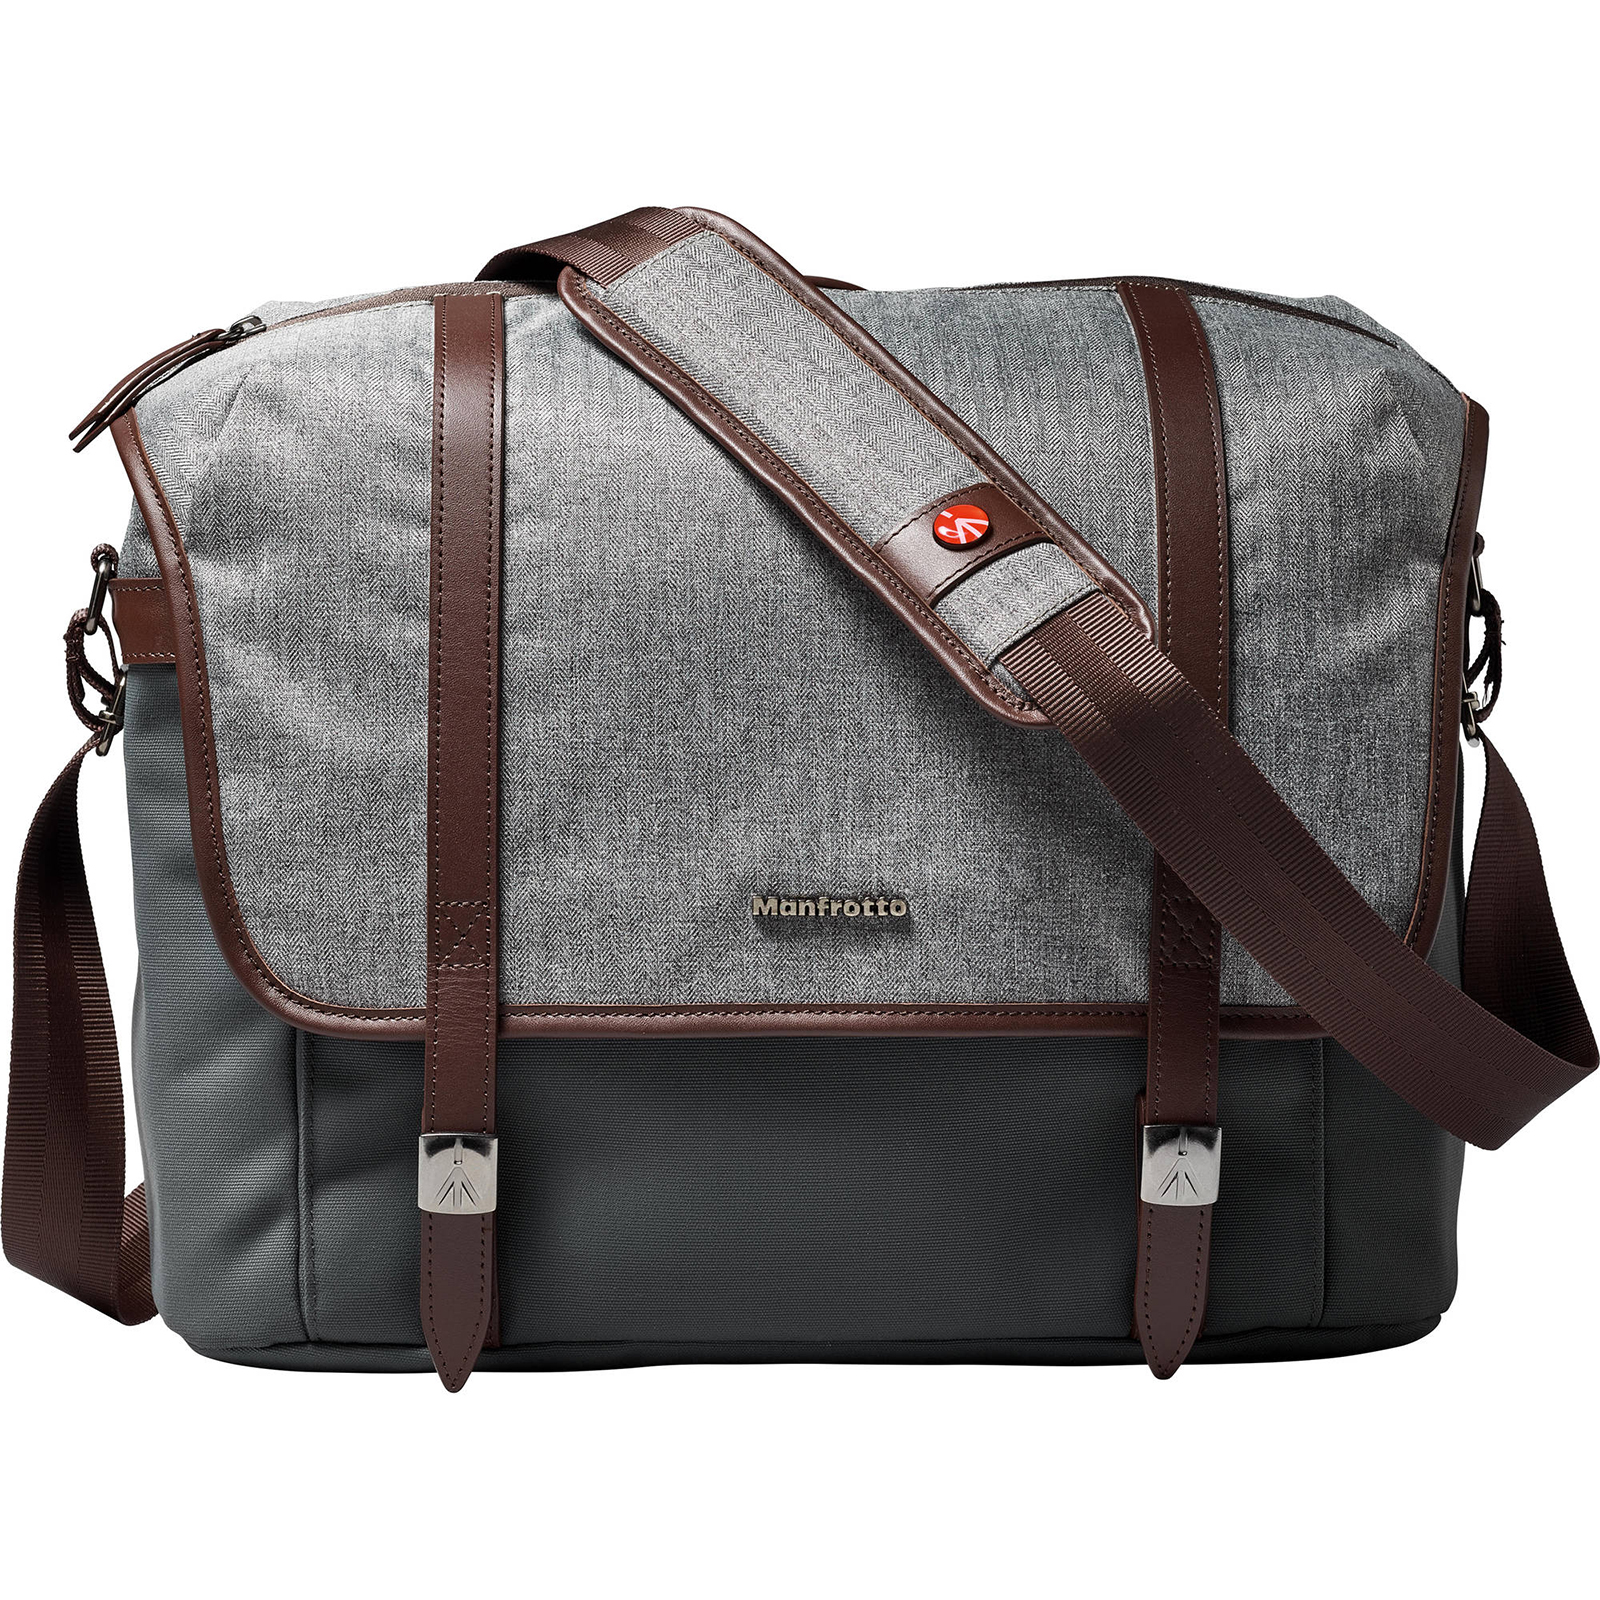 """Manfrotto Lifestyle Windsor Digital SLR Camera Messenger Bag (Medium) with 58"""" Tripod + Flash Diffuser + Cleaning Kit"""